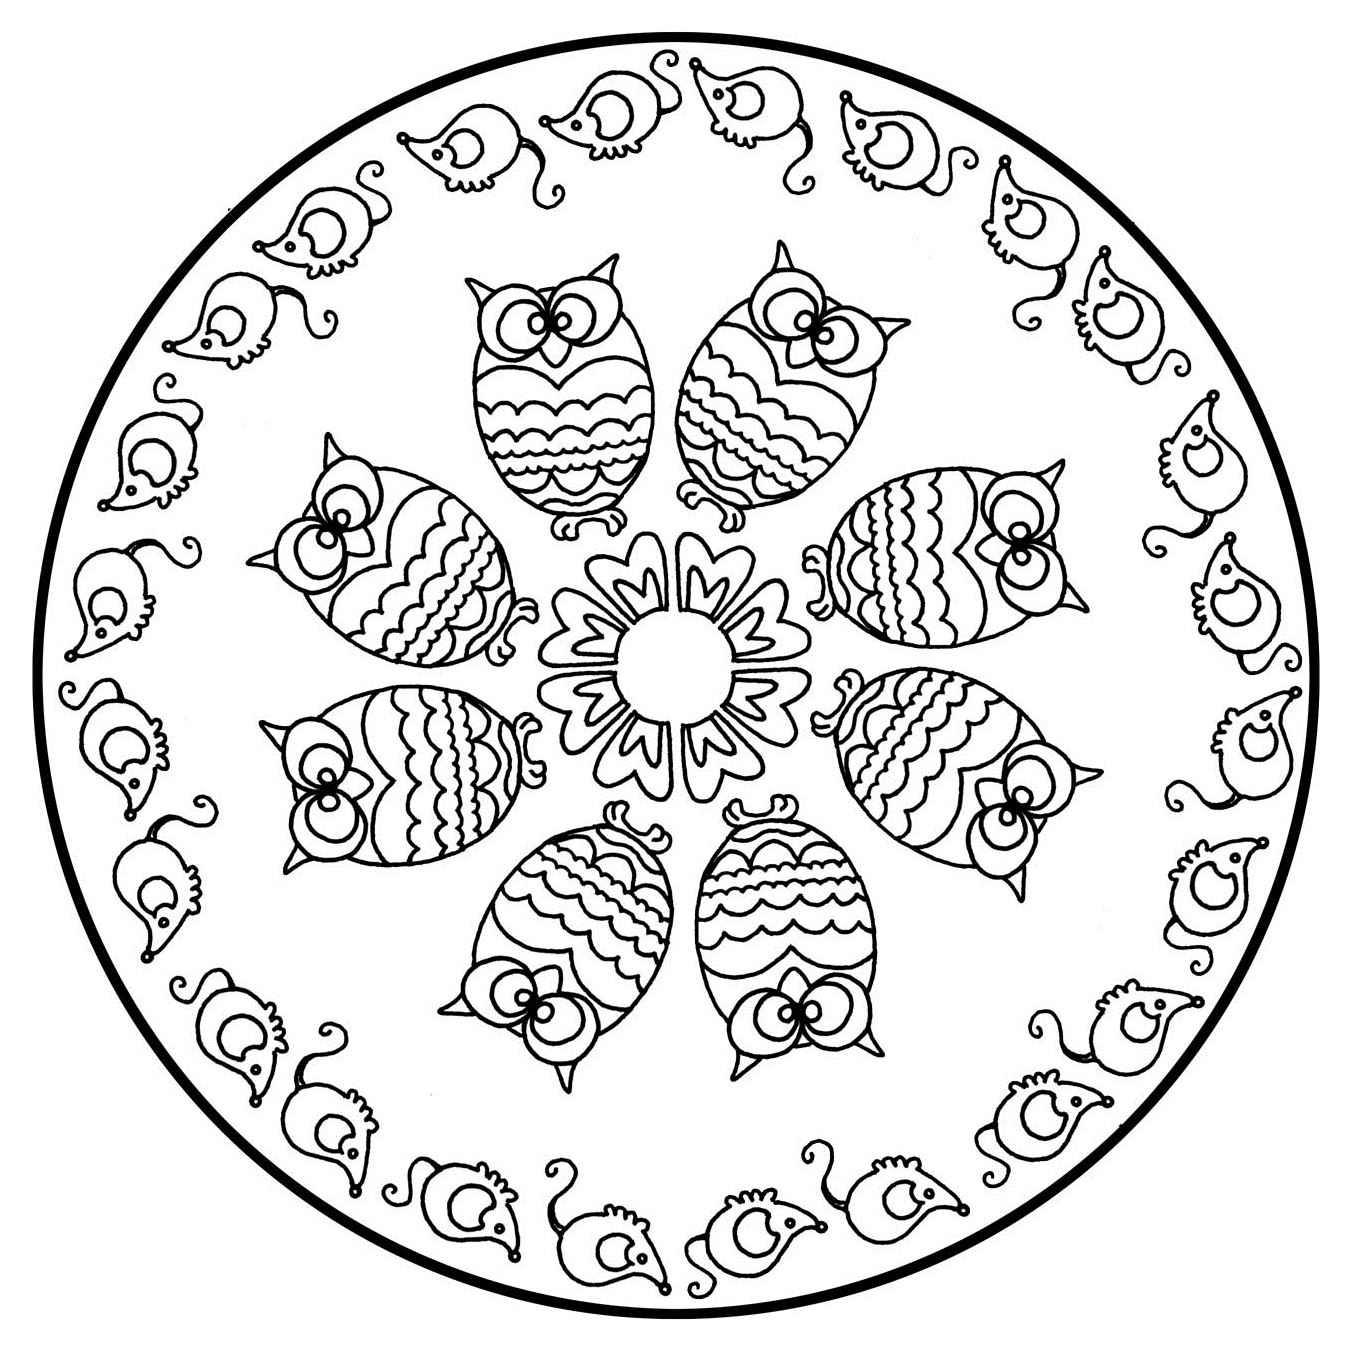 1350x1353 Free Mandalas Page To Color Animals Free Cute